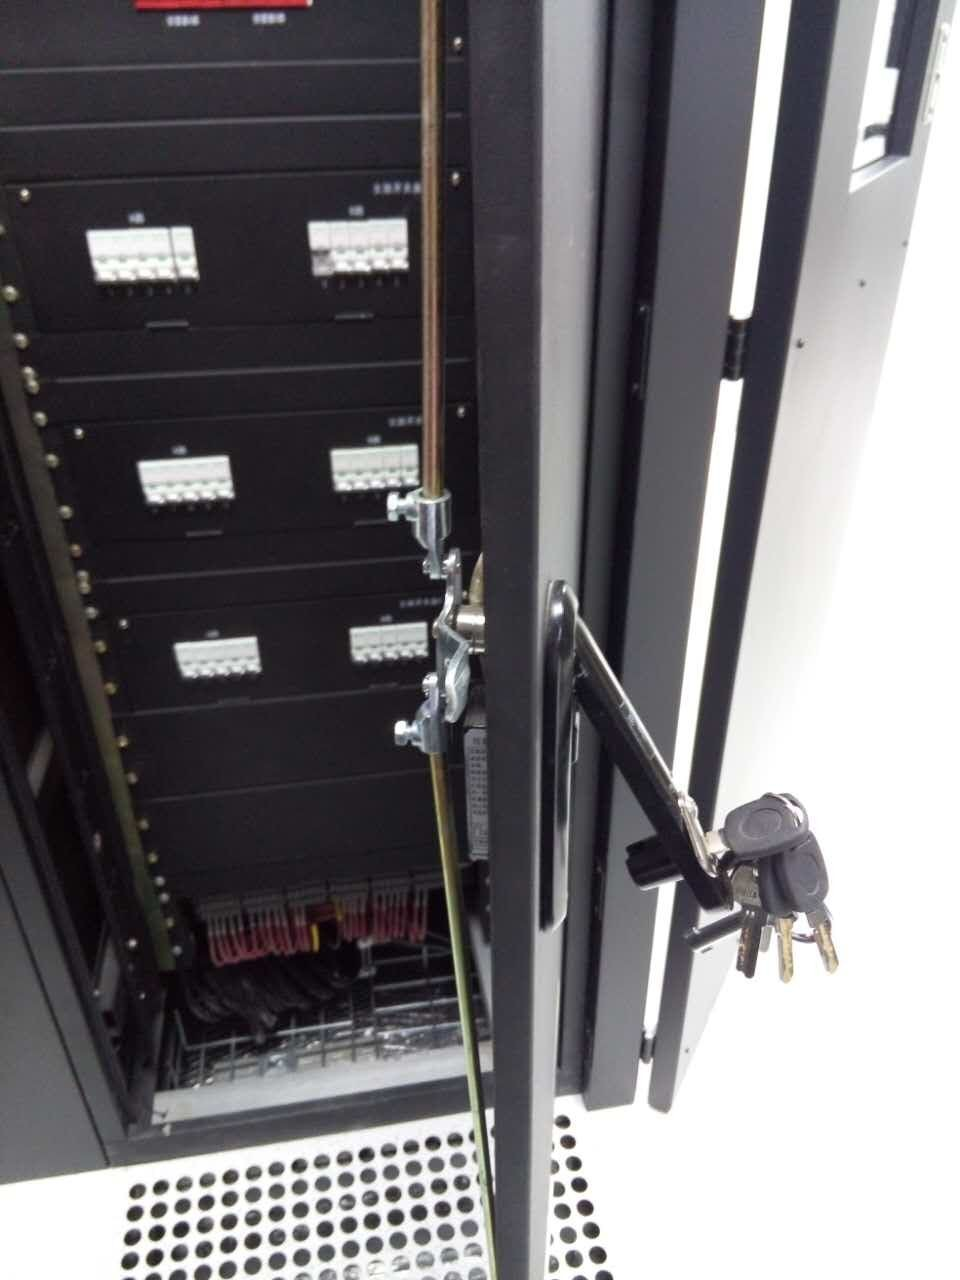 Integration Access Control Data Server Cabinet Lock - Buy Access ...